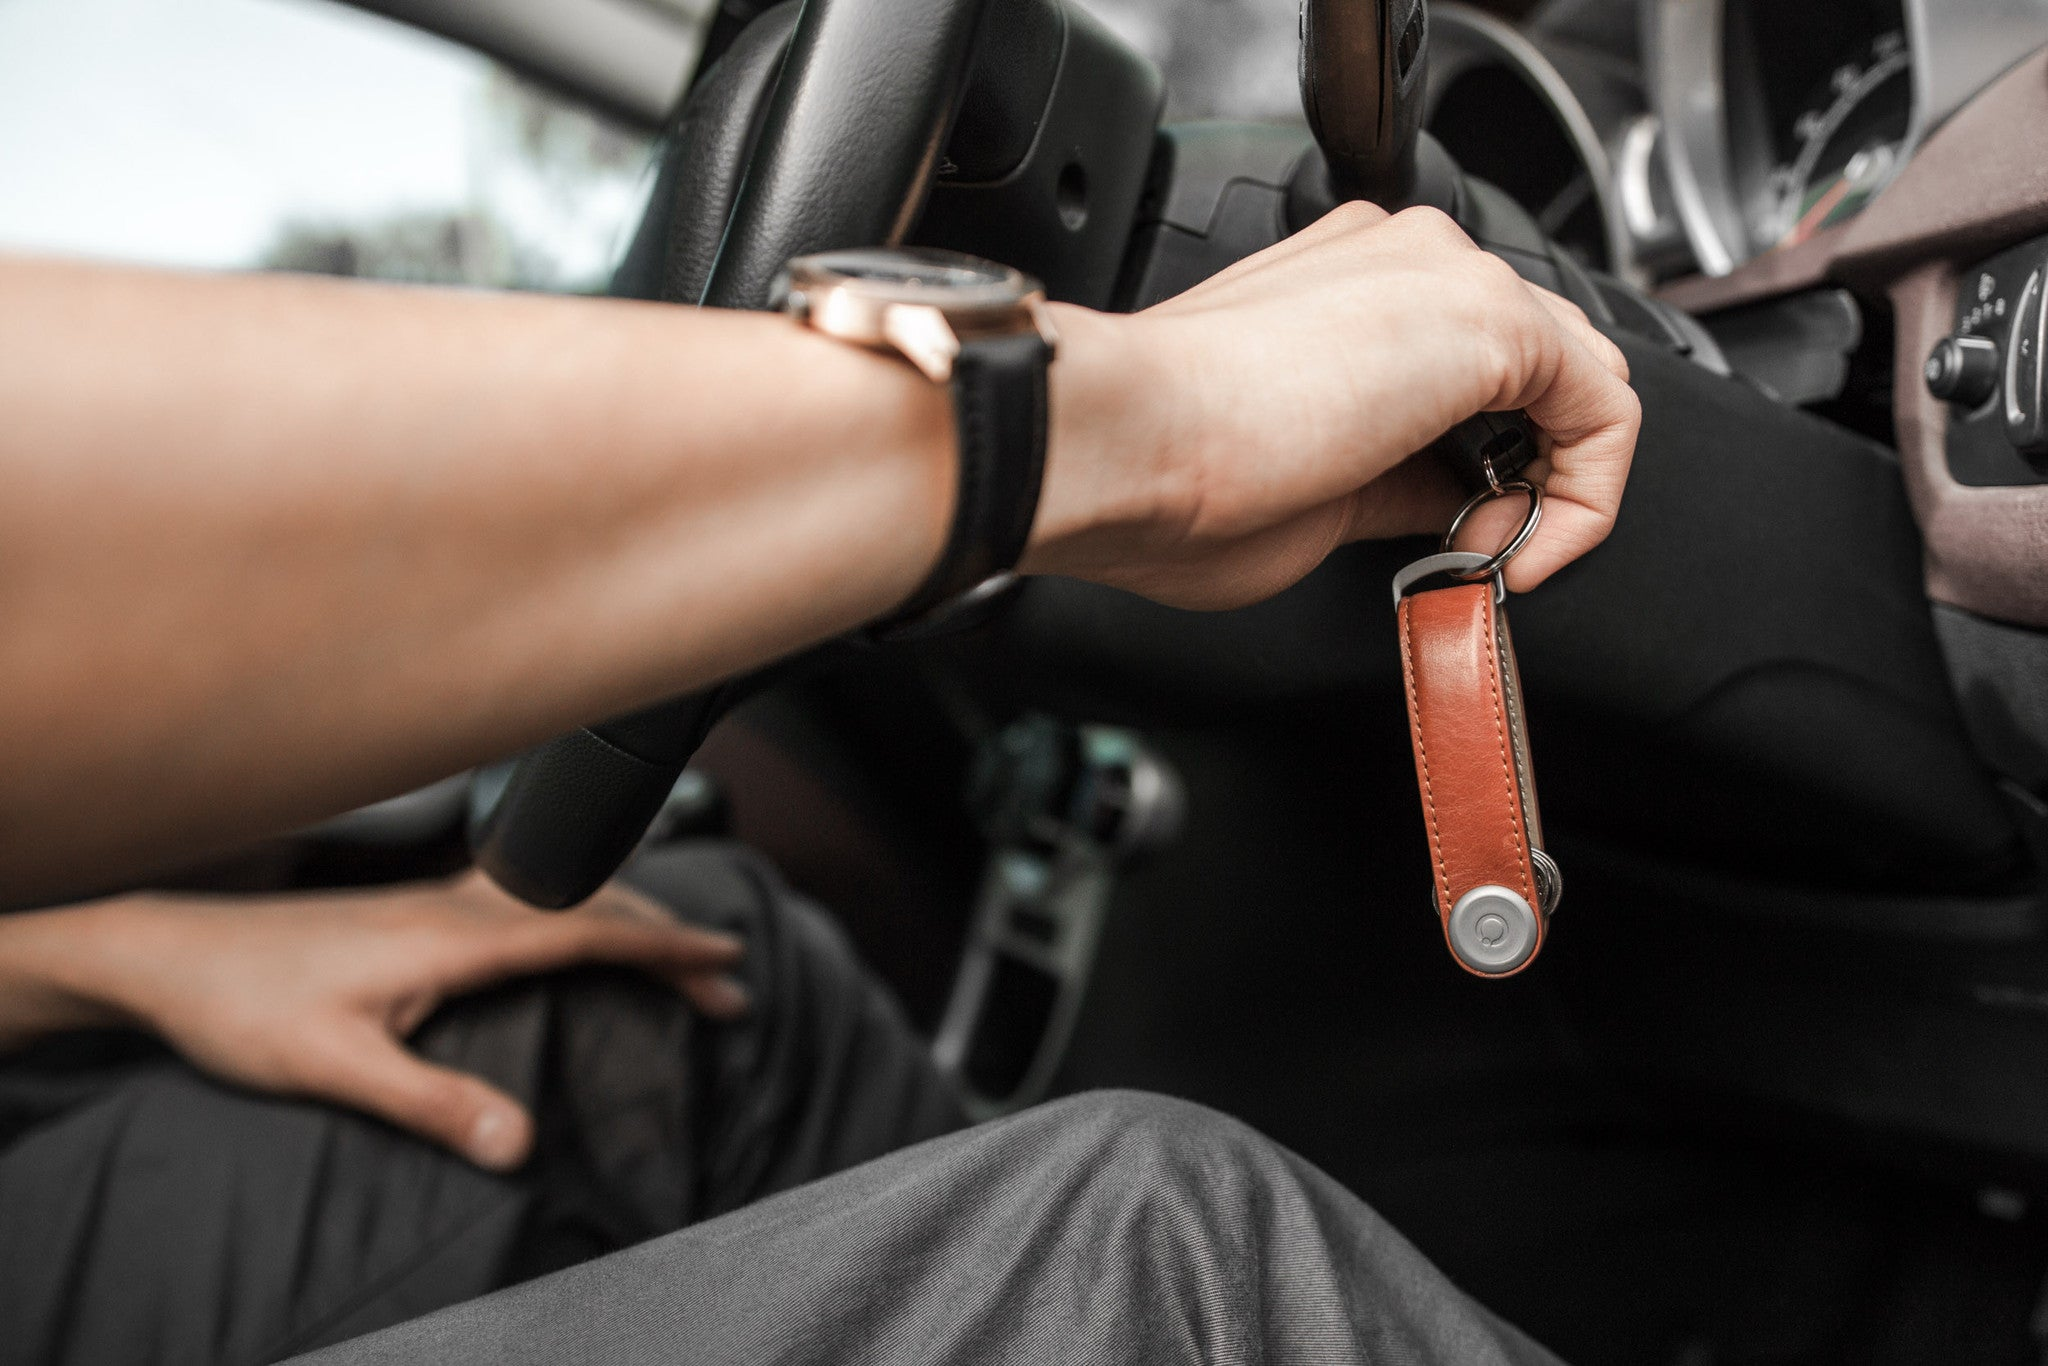 Orbitkey 2.0 Leather Key Holder and Organizer